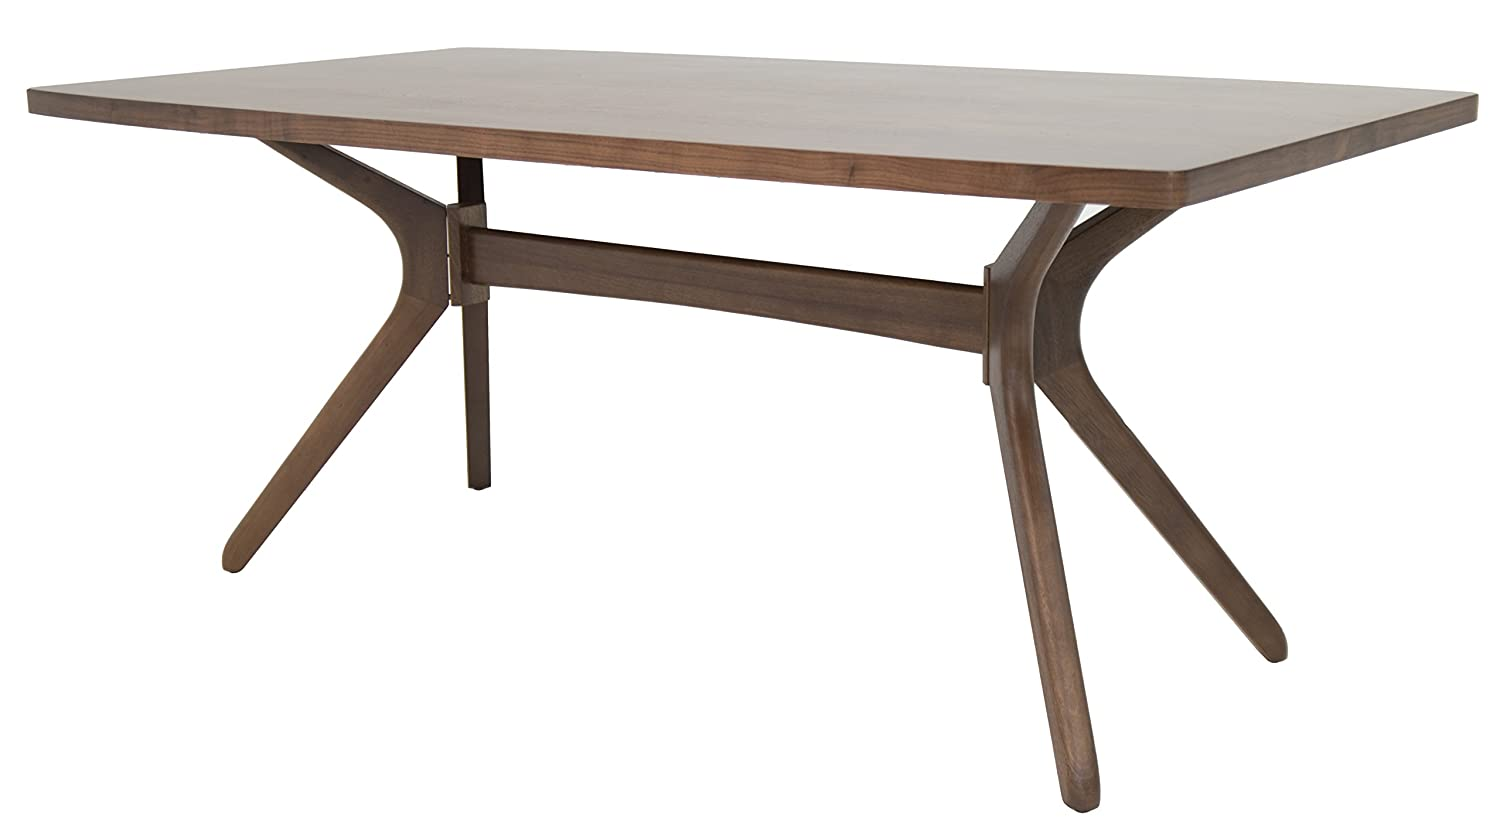 Impacterra Mh-512 Rectangular Dining Table in Montana Walnut